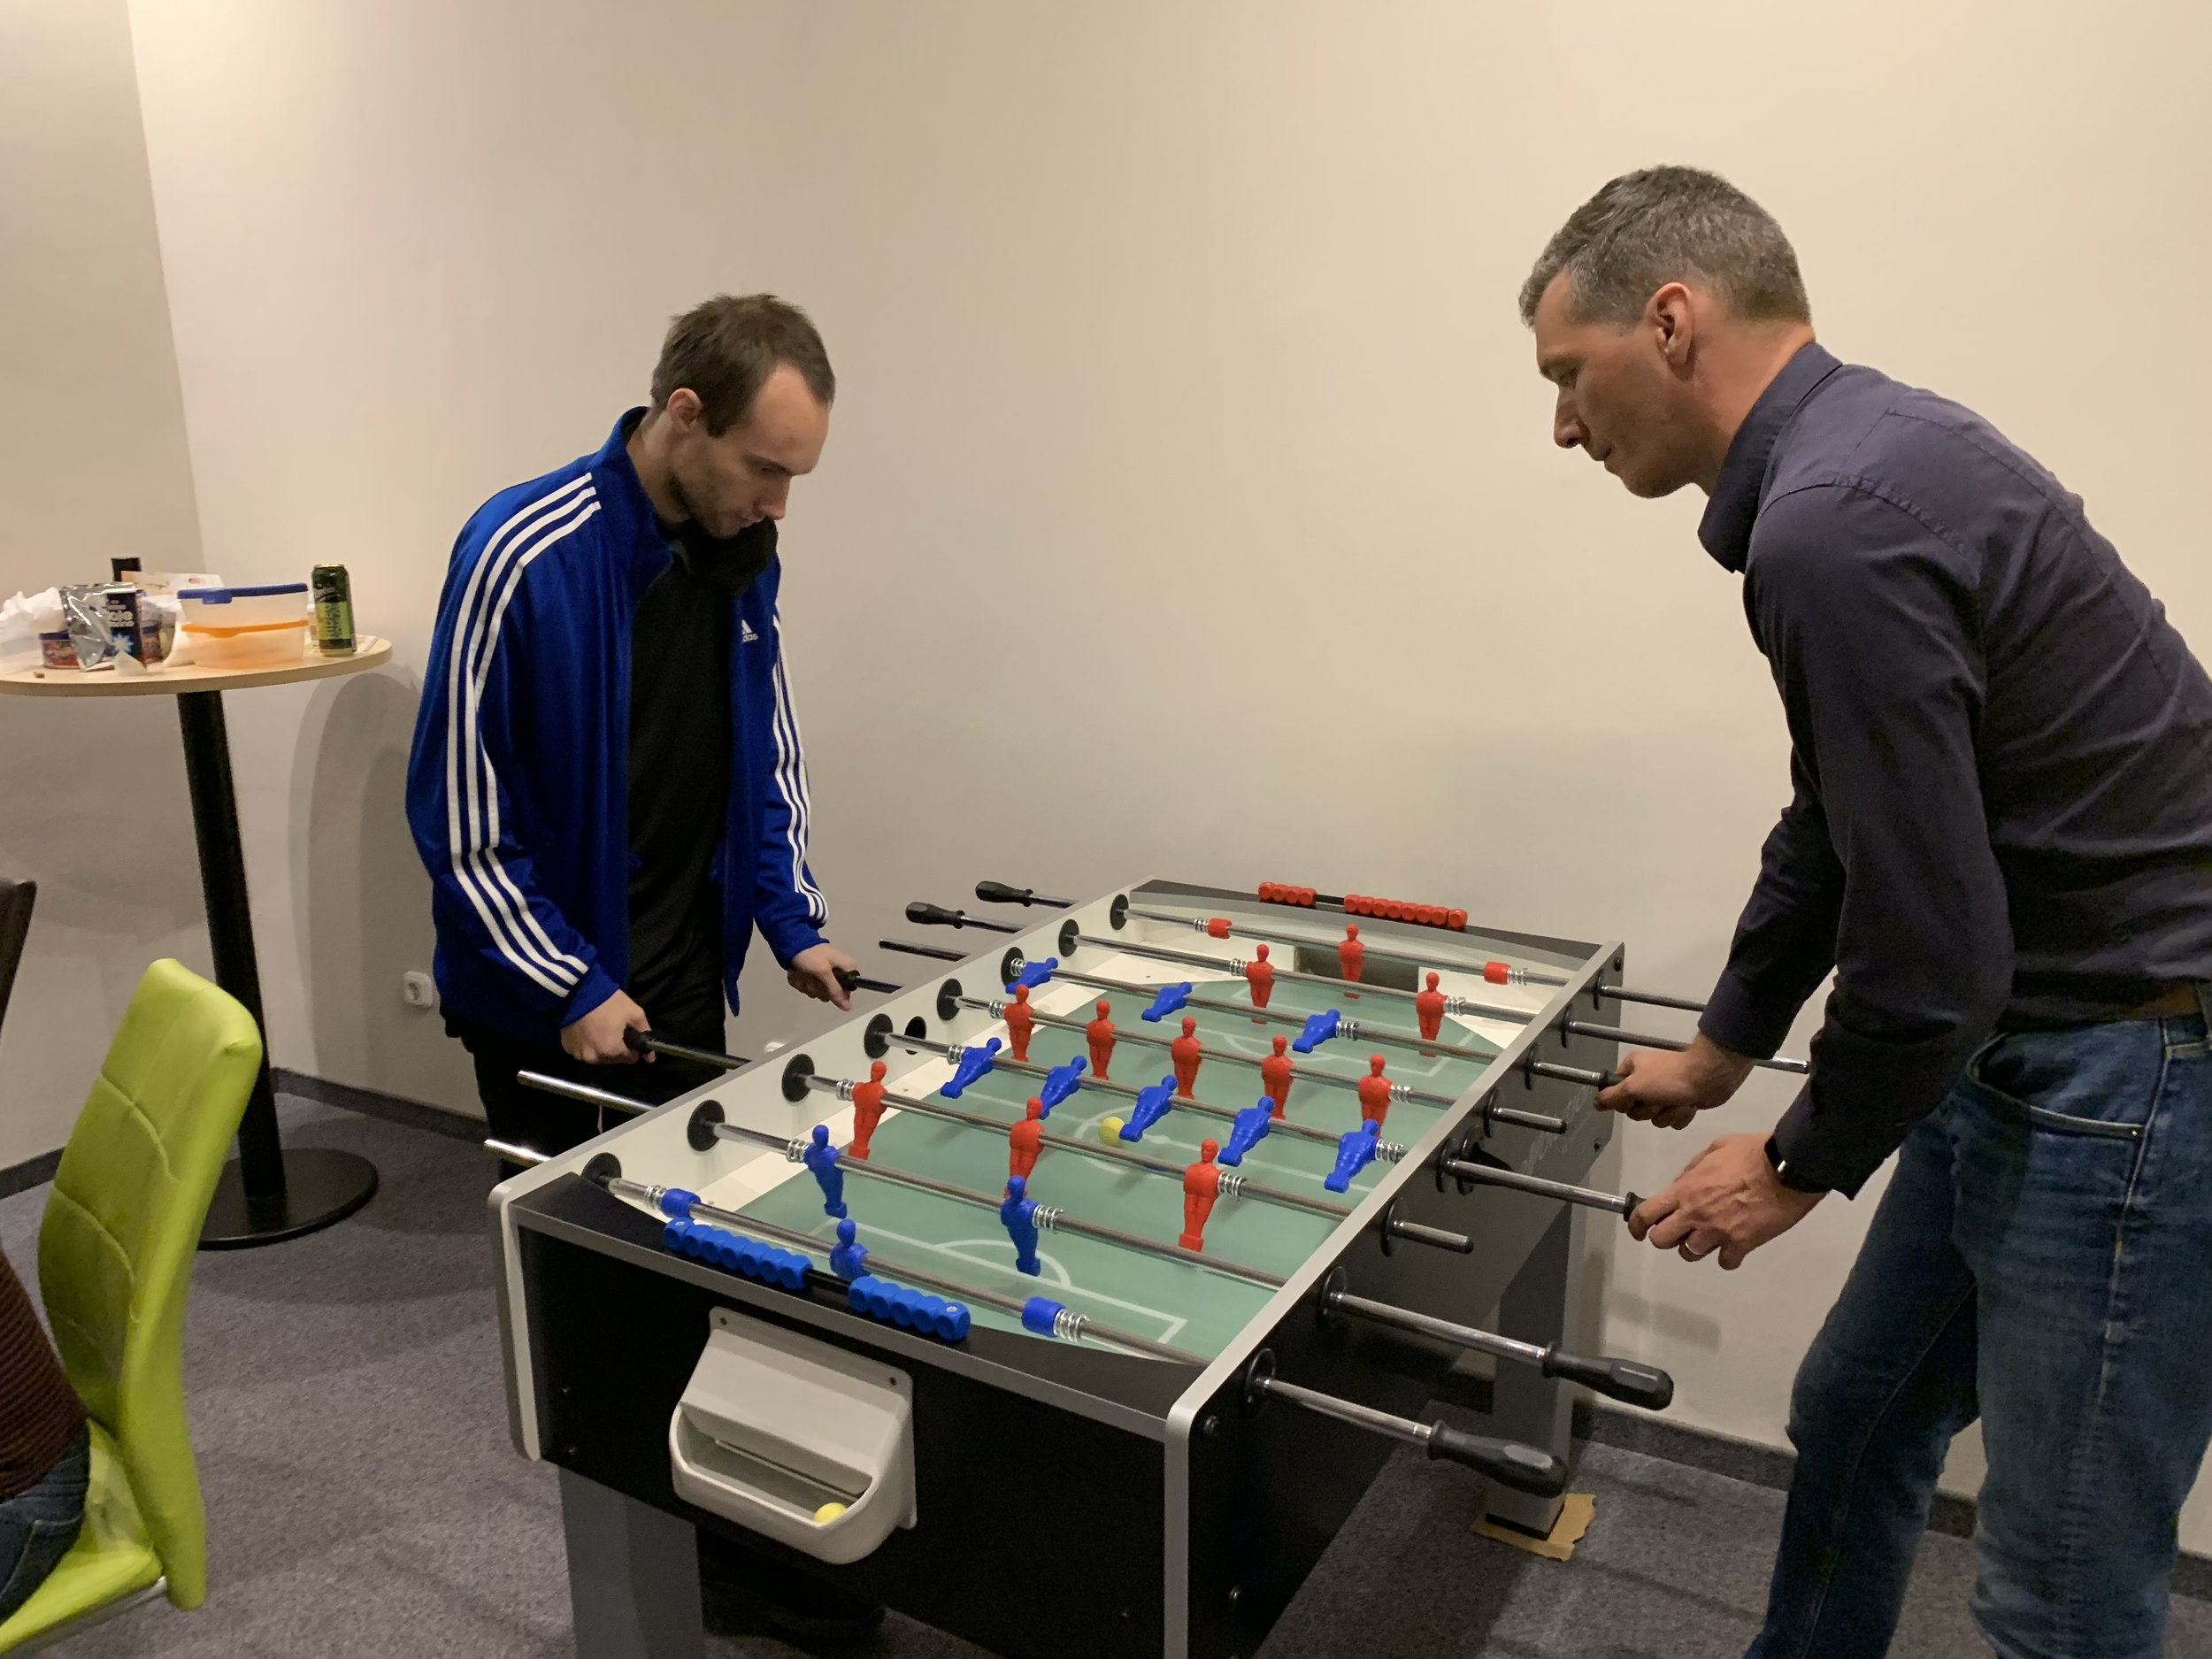 Table football is life in Budapest